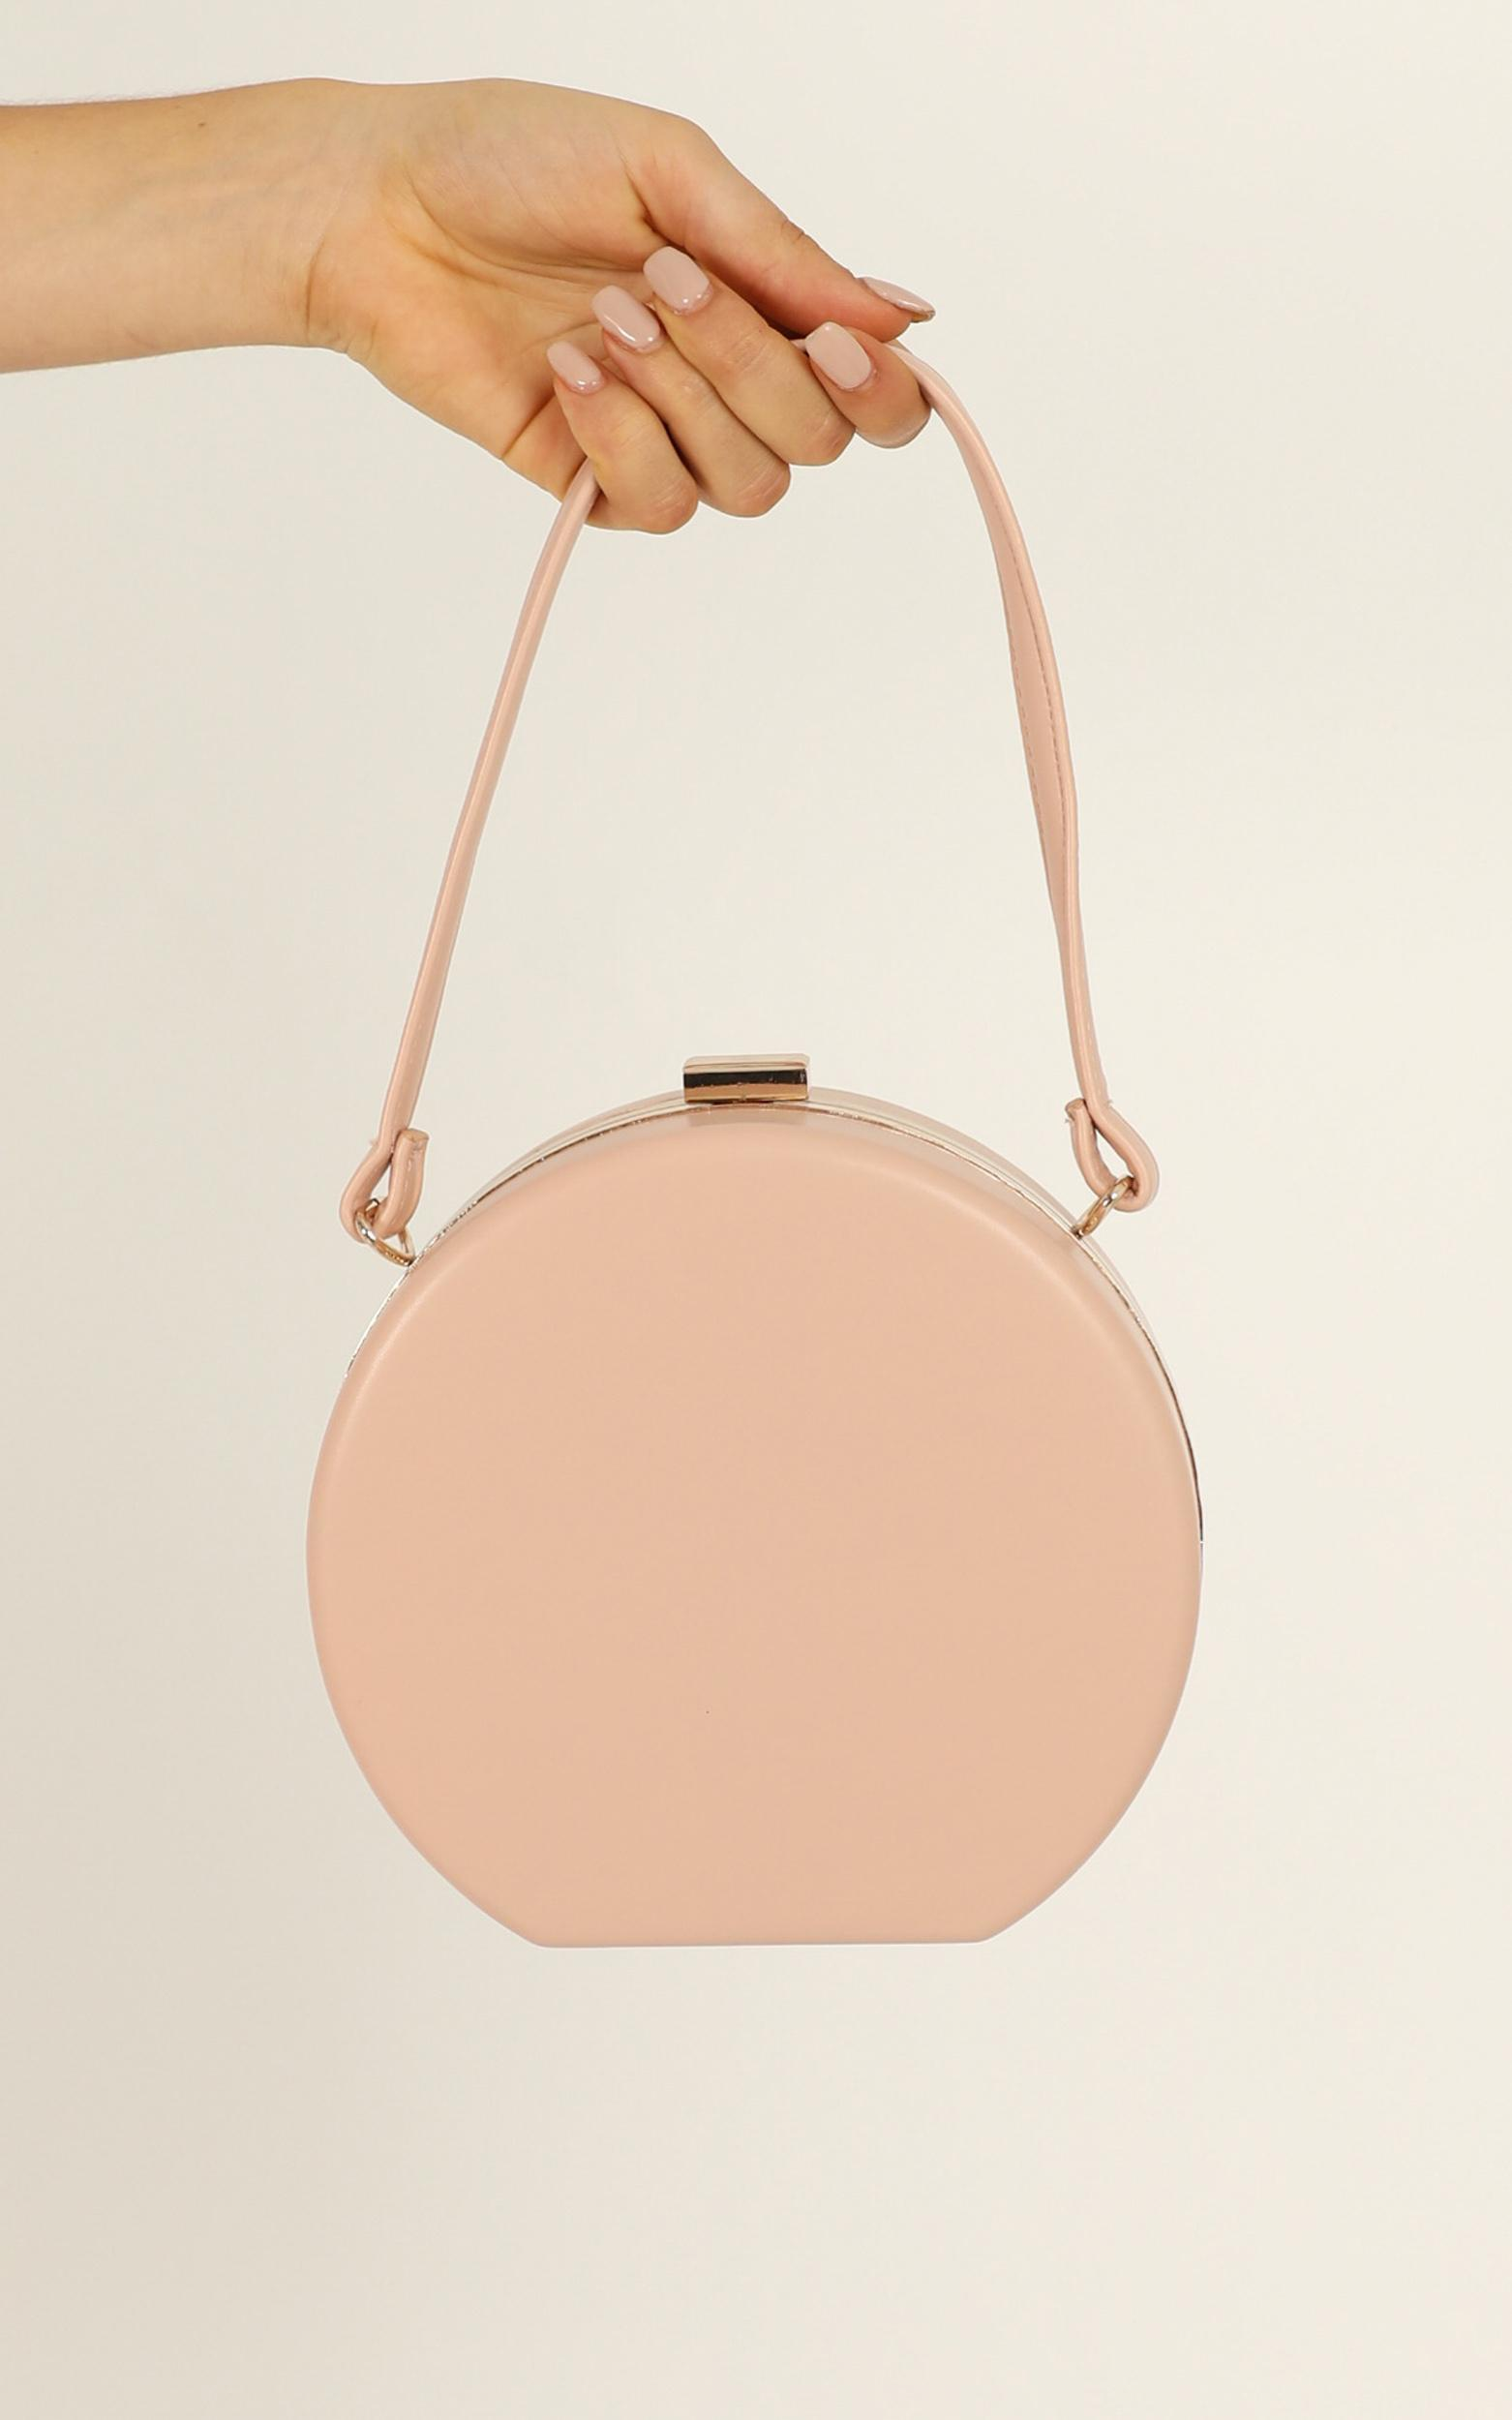 Something To Be Bag In Nude, , hi-res image number null